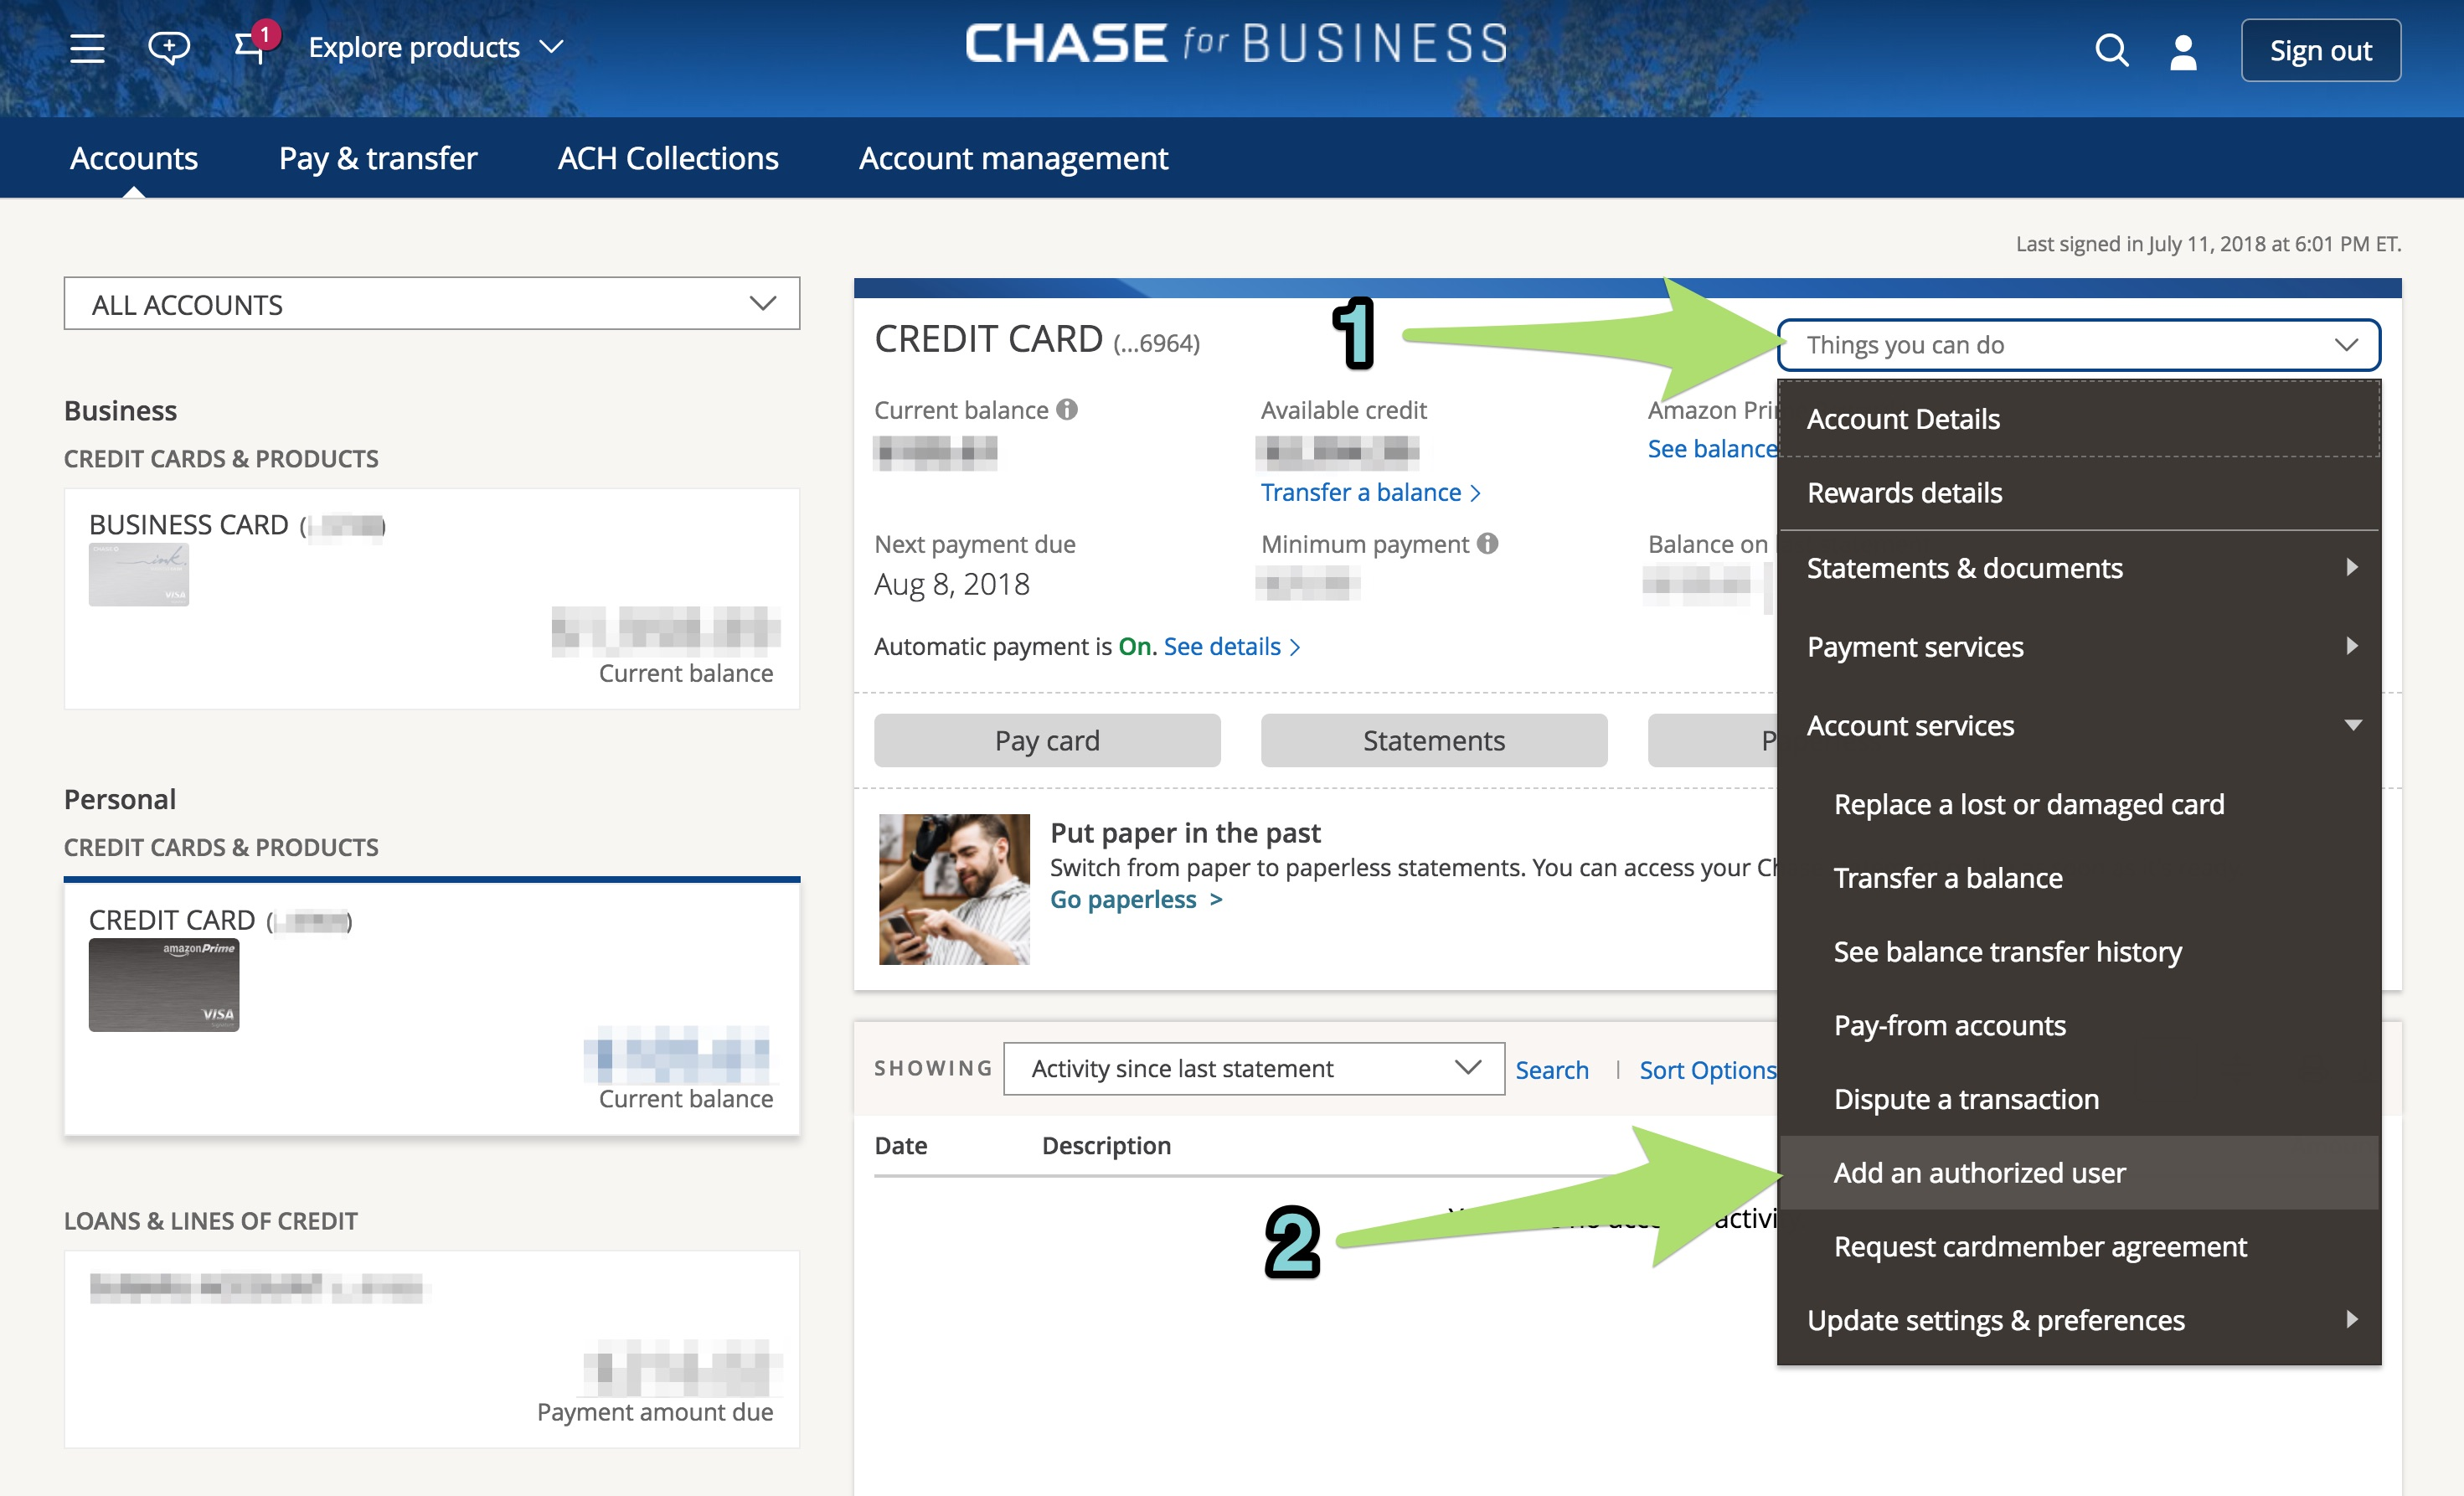 Adding an authorized user for a Chase card.